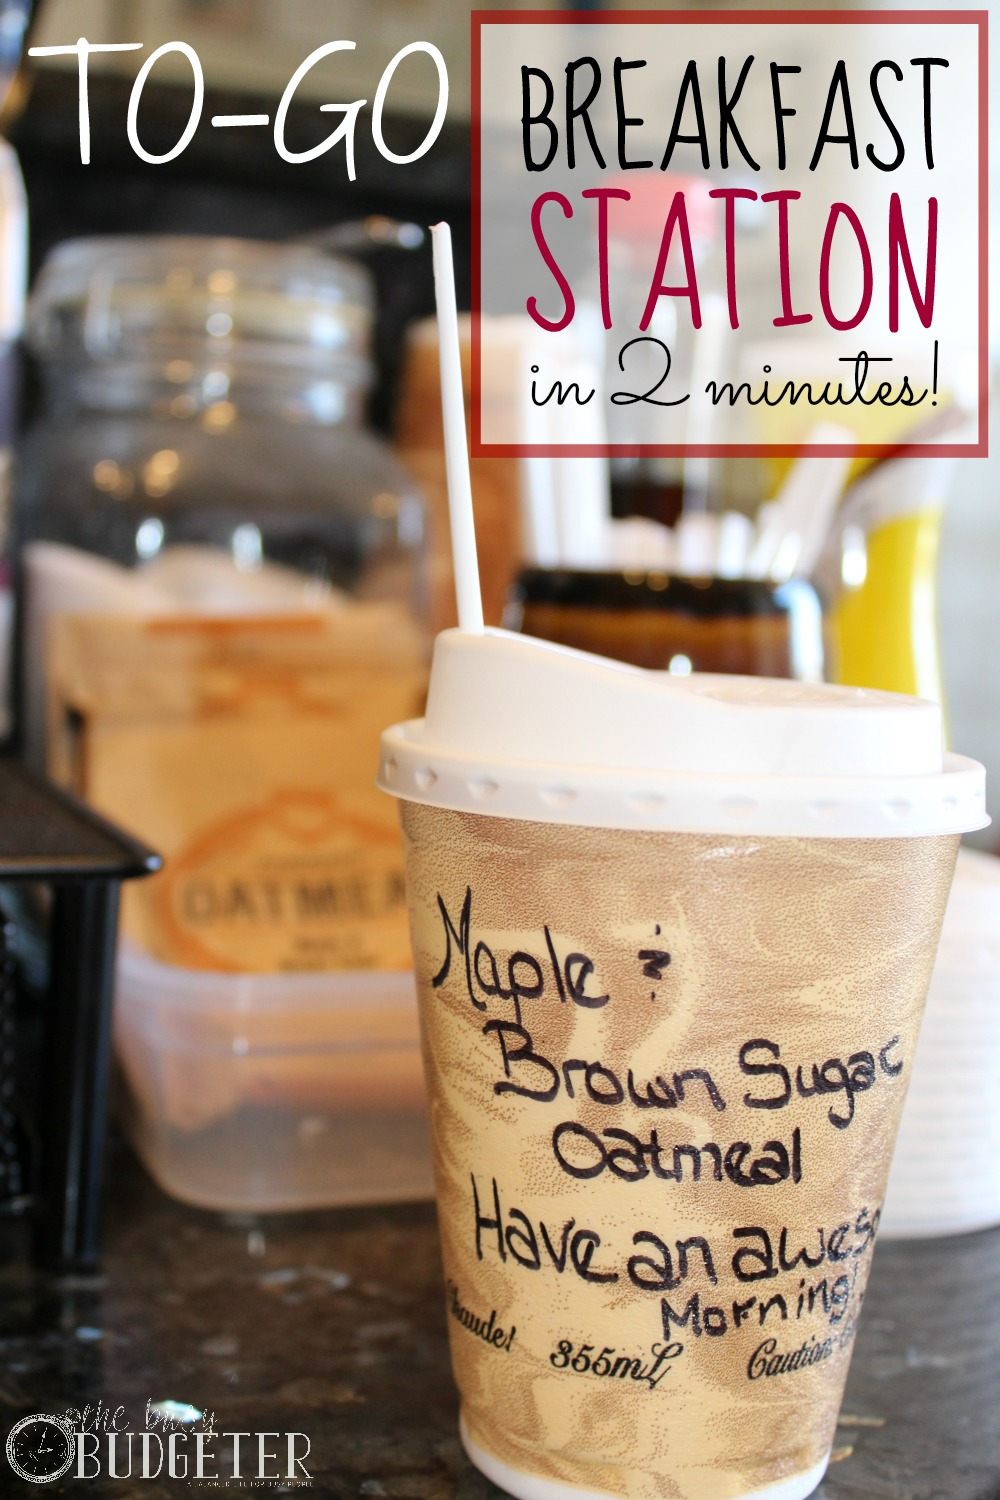 To-Go Oatmeal Station in Less Than 2 minutes. SO EXCITED ABOUT THIS! I've ended up in the fast food drive thru 4x last week! This was exactly what I needed to save money and make mornings easier!